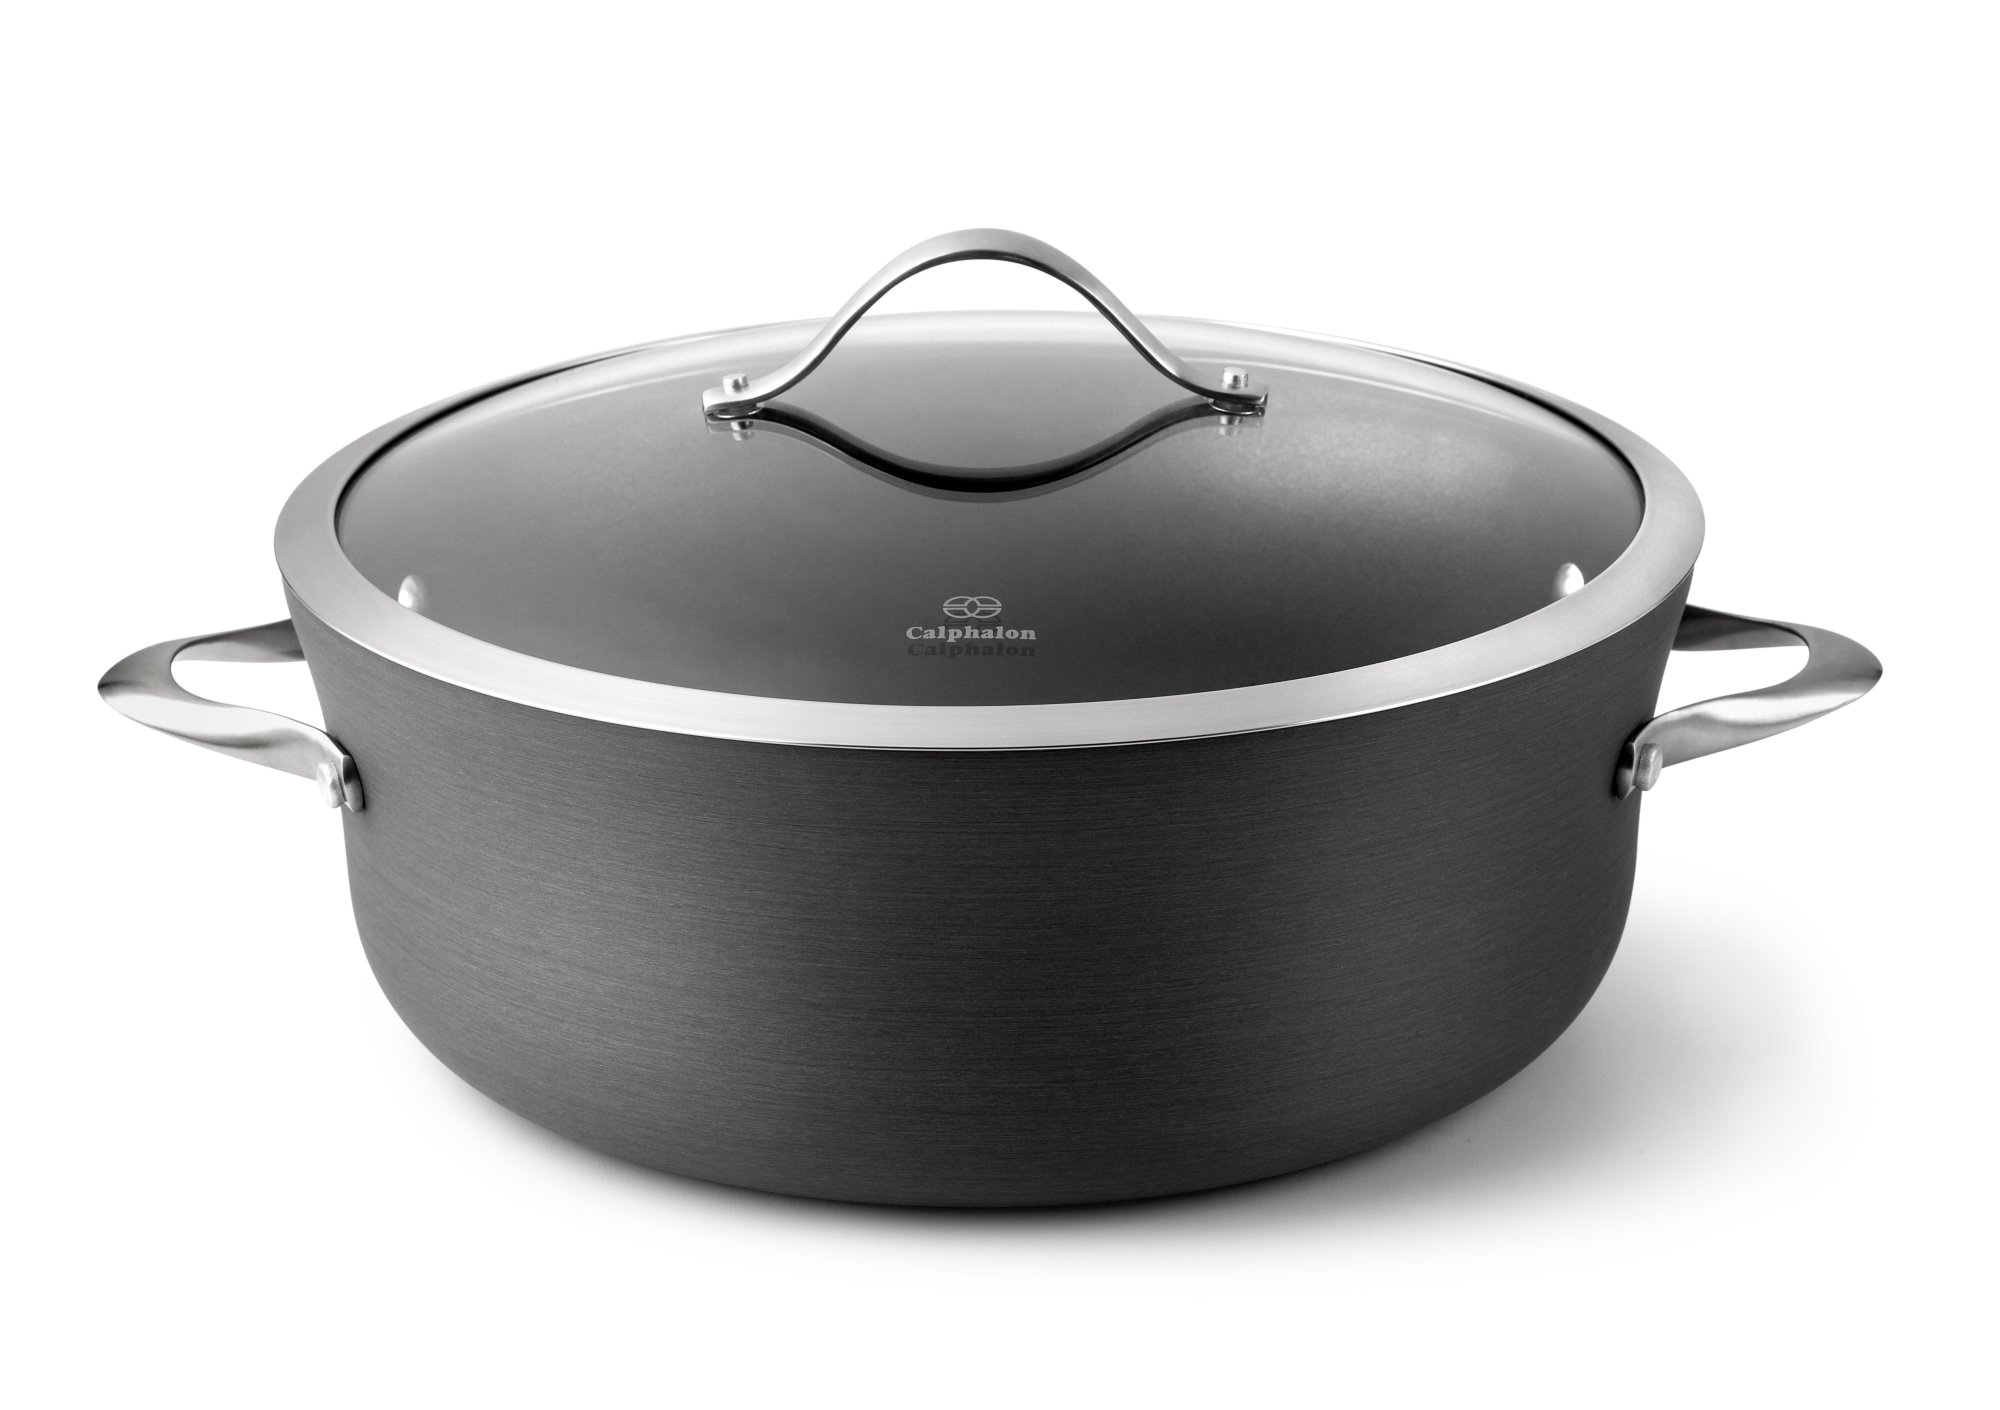 Calphalon Contemporary Nonstick 8.5-qt. Dutch Oven with Cover